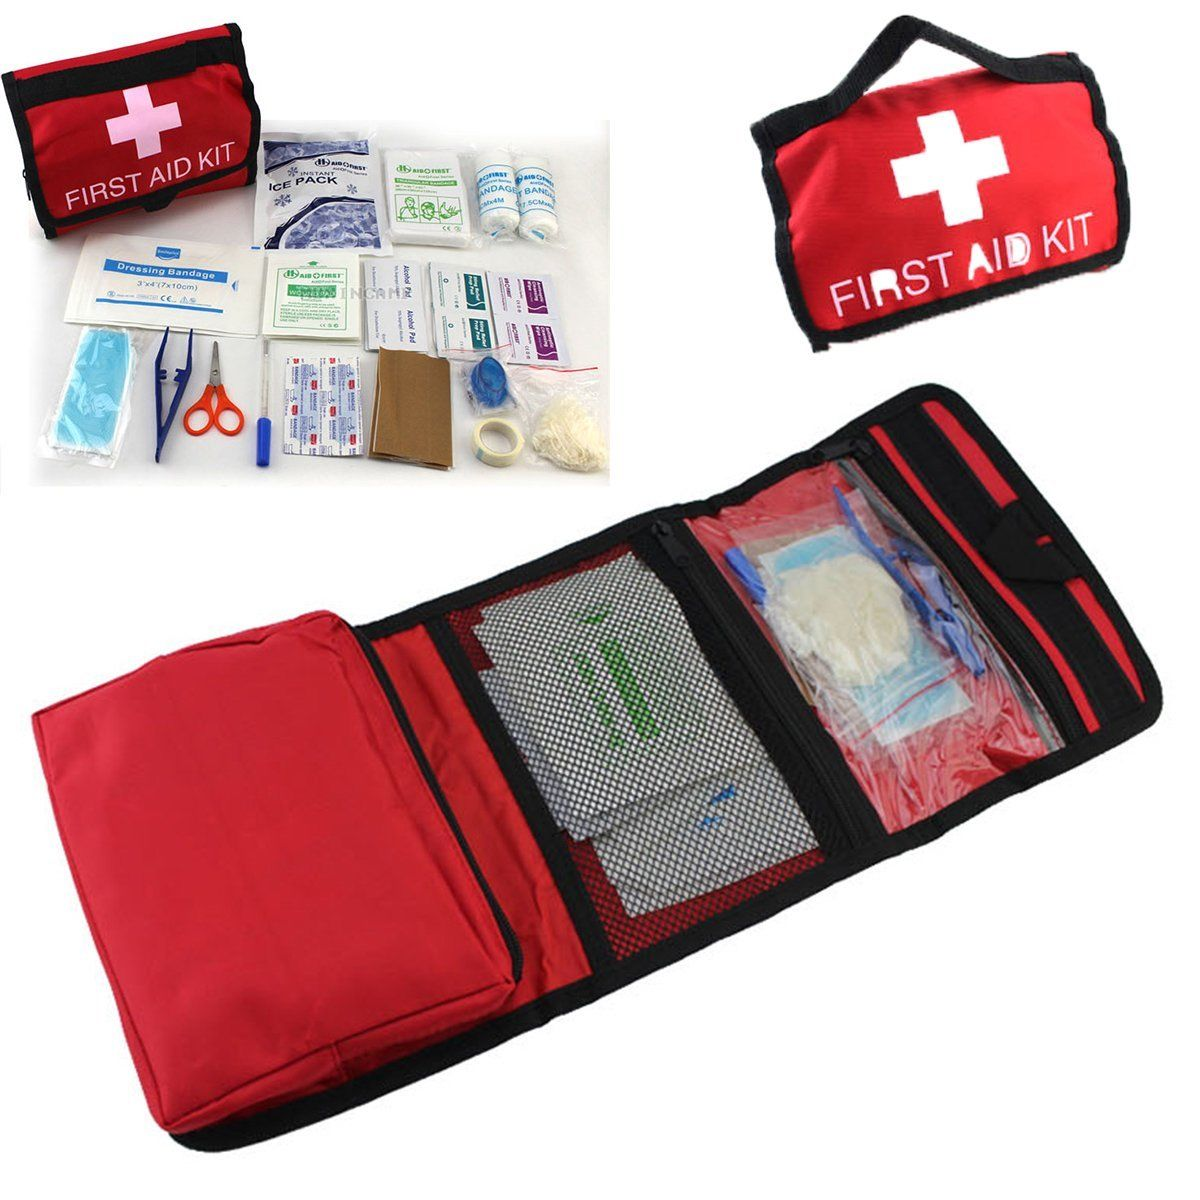 1set Outdoor Wilderness Survival First Aid Kit Medical Bag Rescuing Equipment Camping Hiking Medical Emergency Treatment Packs outdoor survival 12 in 1 emergency bag first aid kit bag middle size red emergency survival medical kit treatment pack